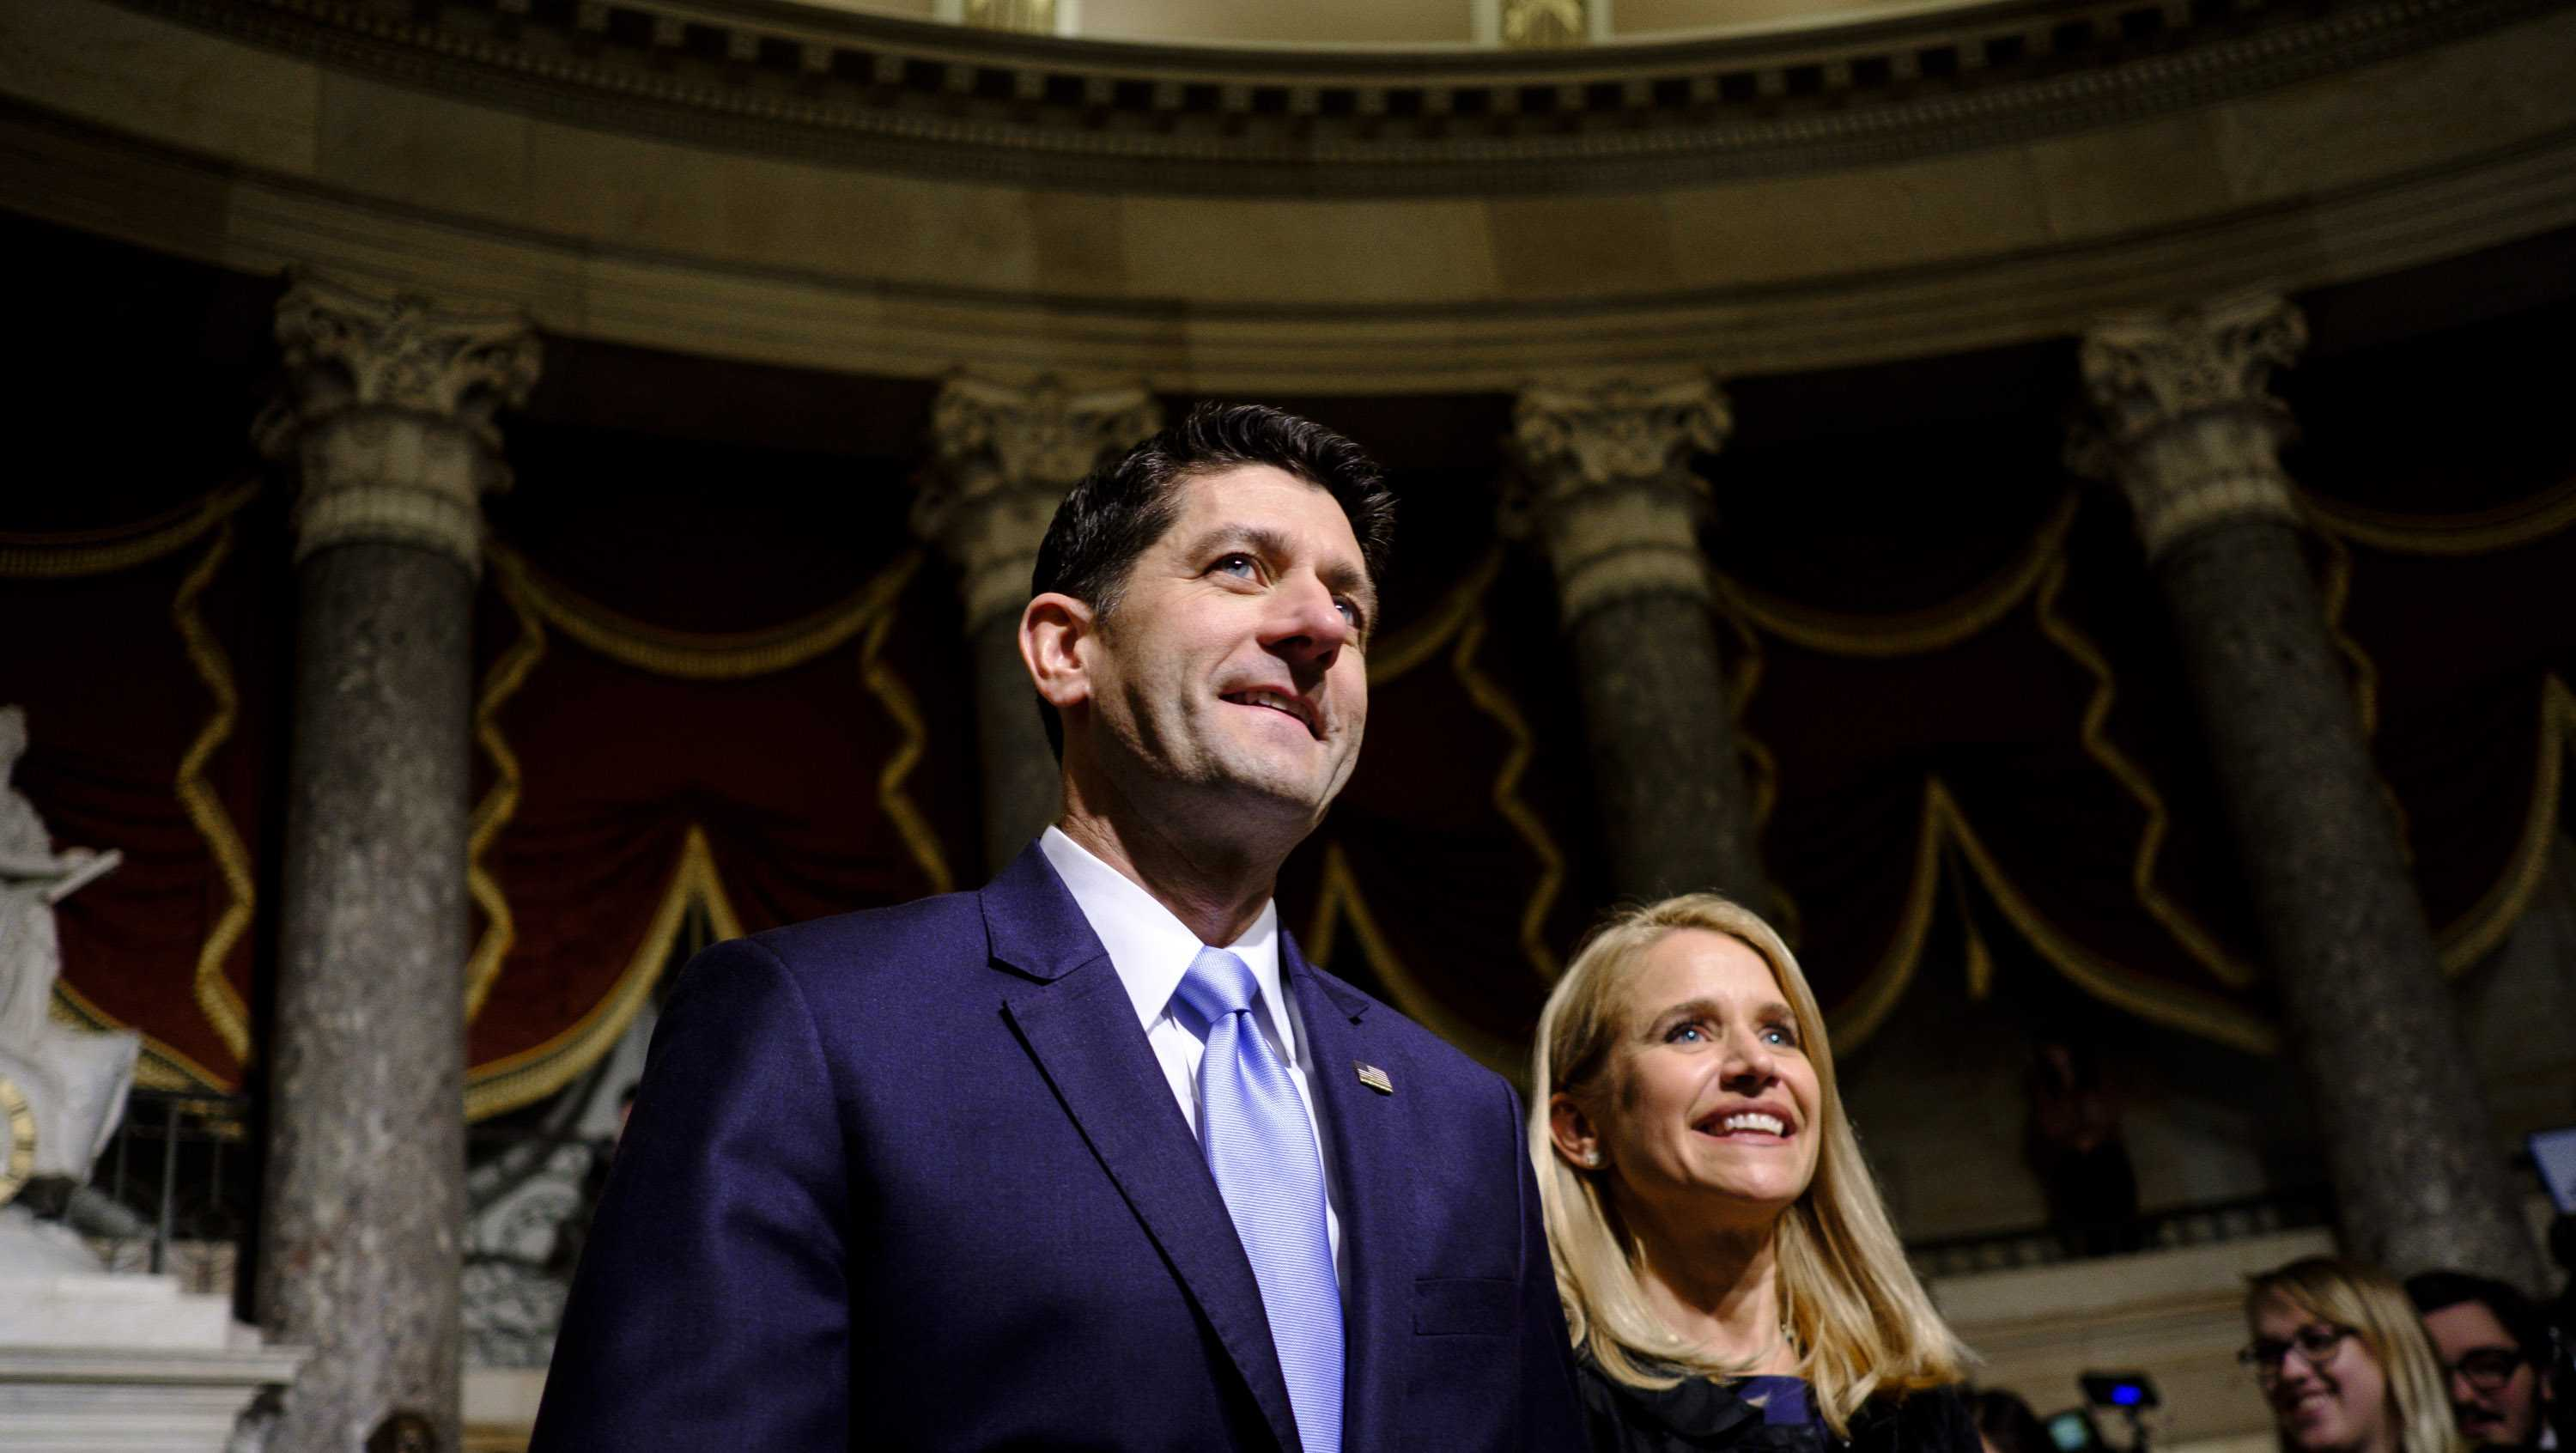 U.S. Speaker of the House Paul Ryan (R-WI) and his wife, Janna, make their way to the House of Representatives Chamber for President Donald Trump's first State of the Union Address before a joint session of Congress on January 30, 2018 in Washington, DC.